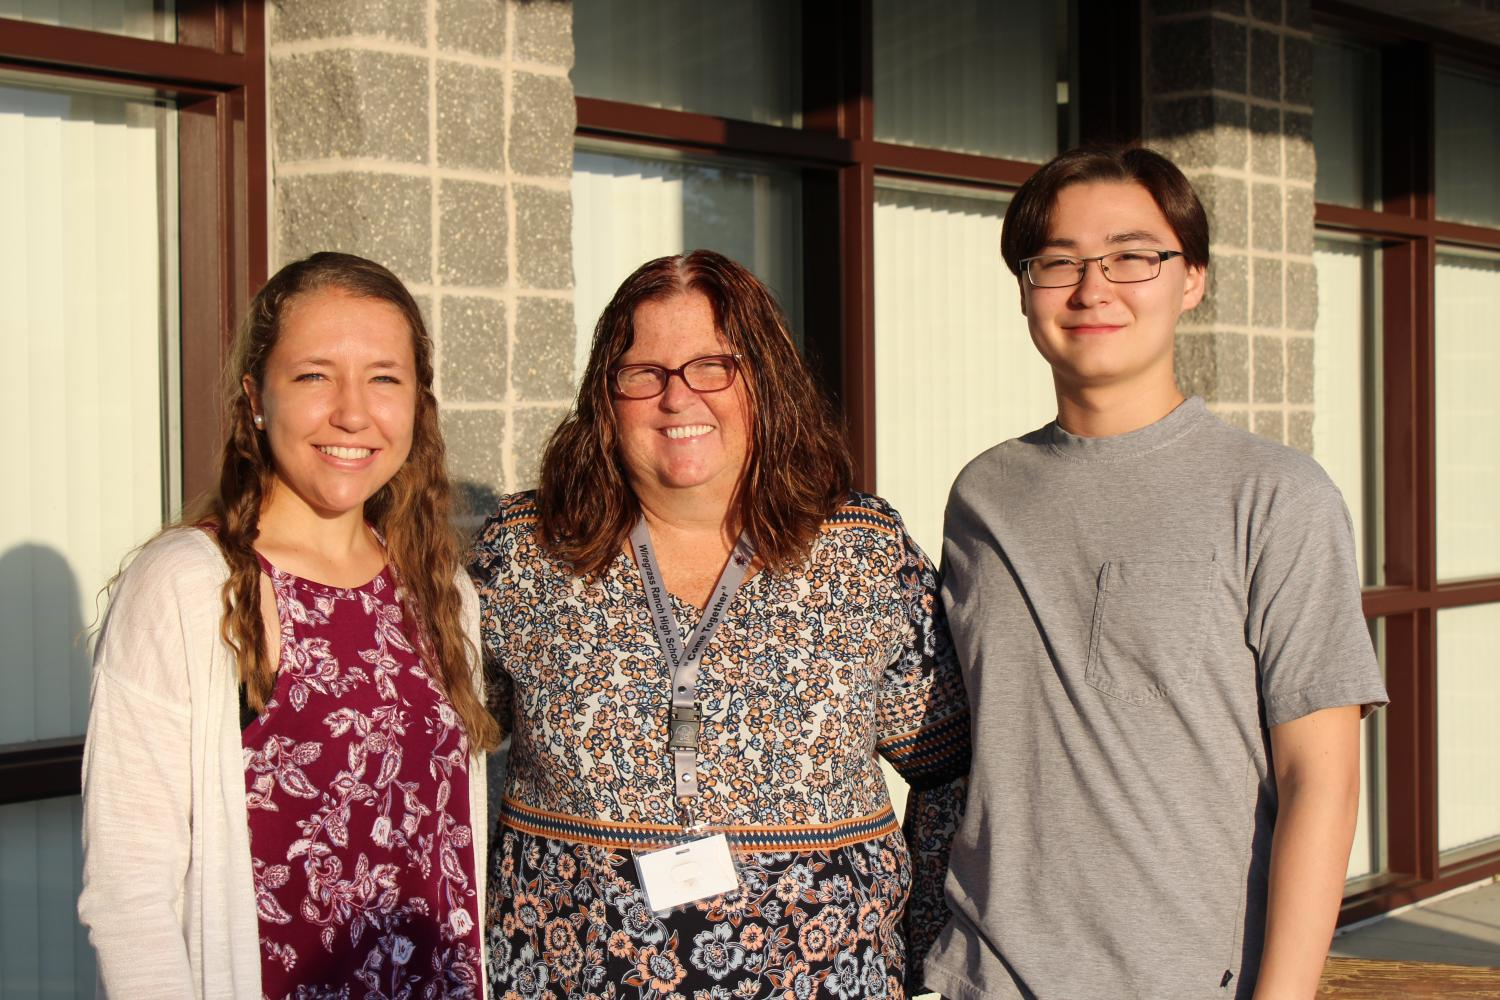 Two of the semi-finalists from WRHS, Emily Leonard (12) and Taylor Douglas (12), with Mrs. White.